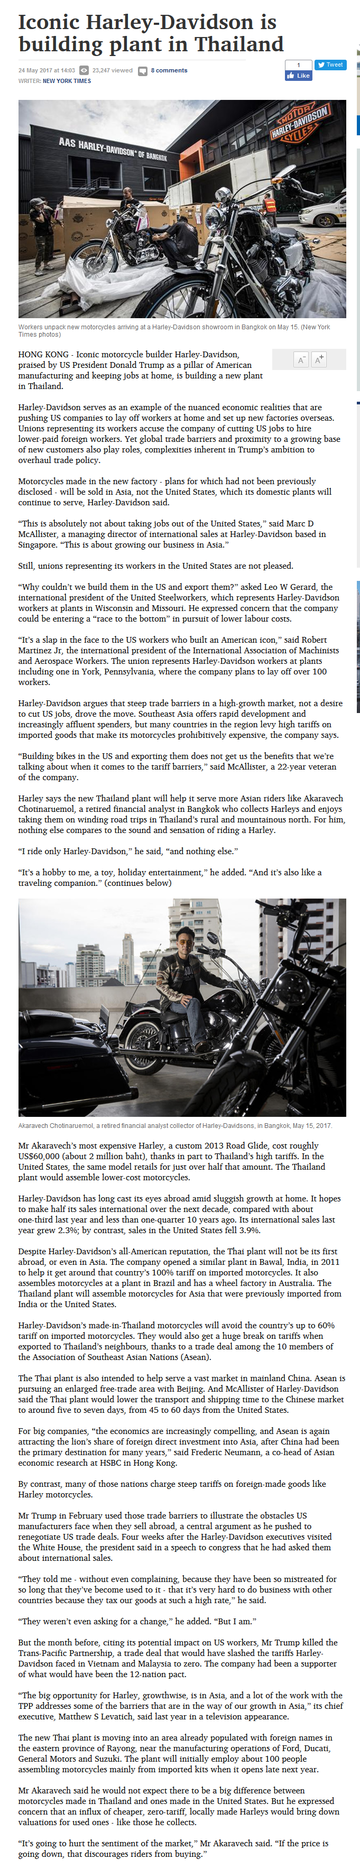 Harley-Davidson is building plant in Thailand